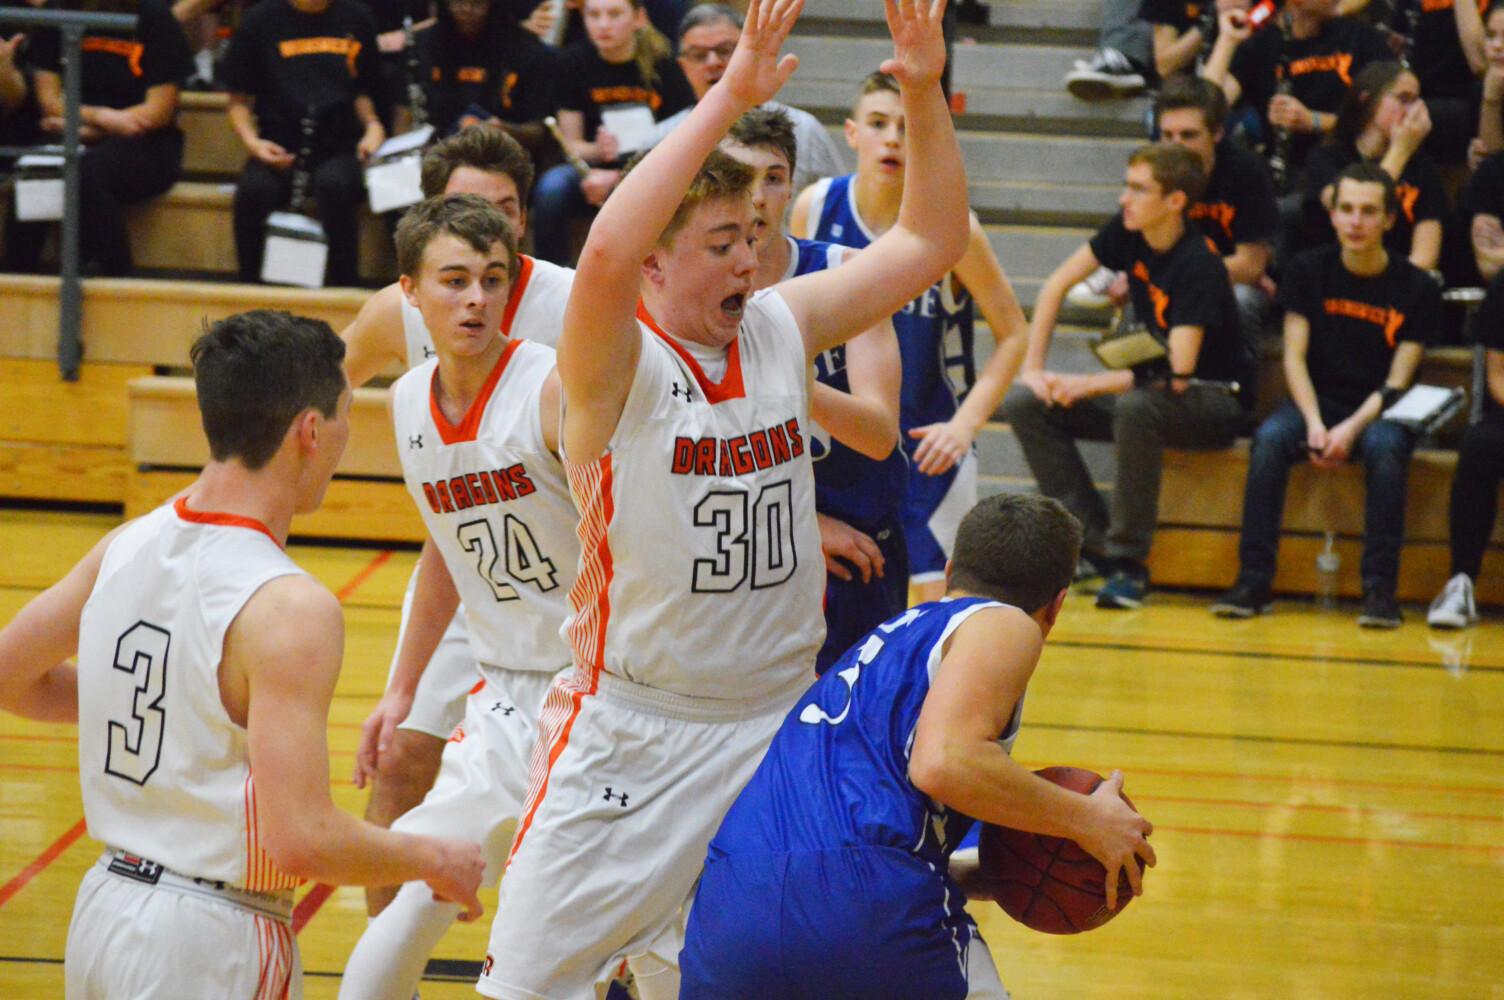 Boys Basketball Preview Teams Looking To Step Up This Year